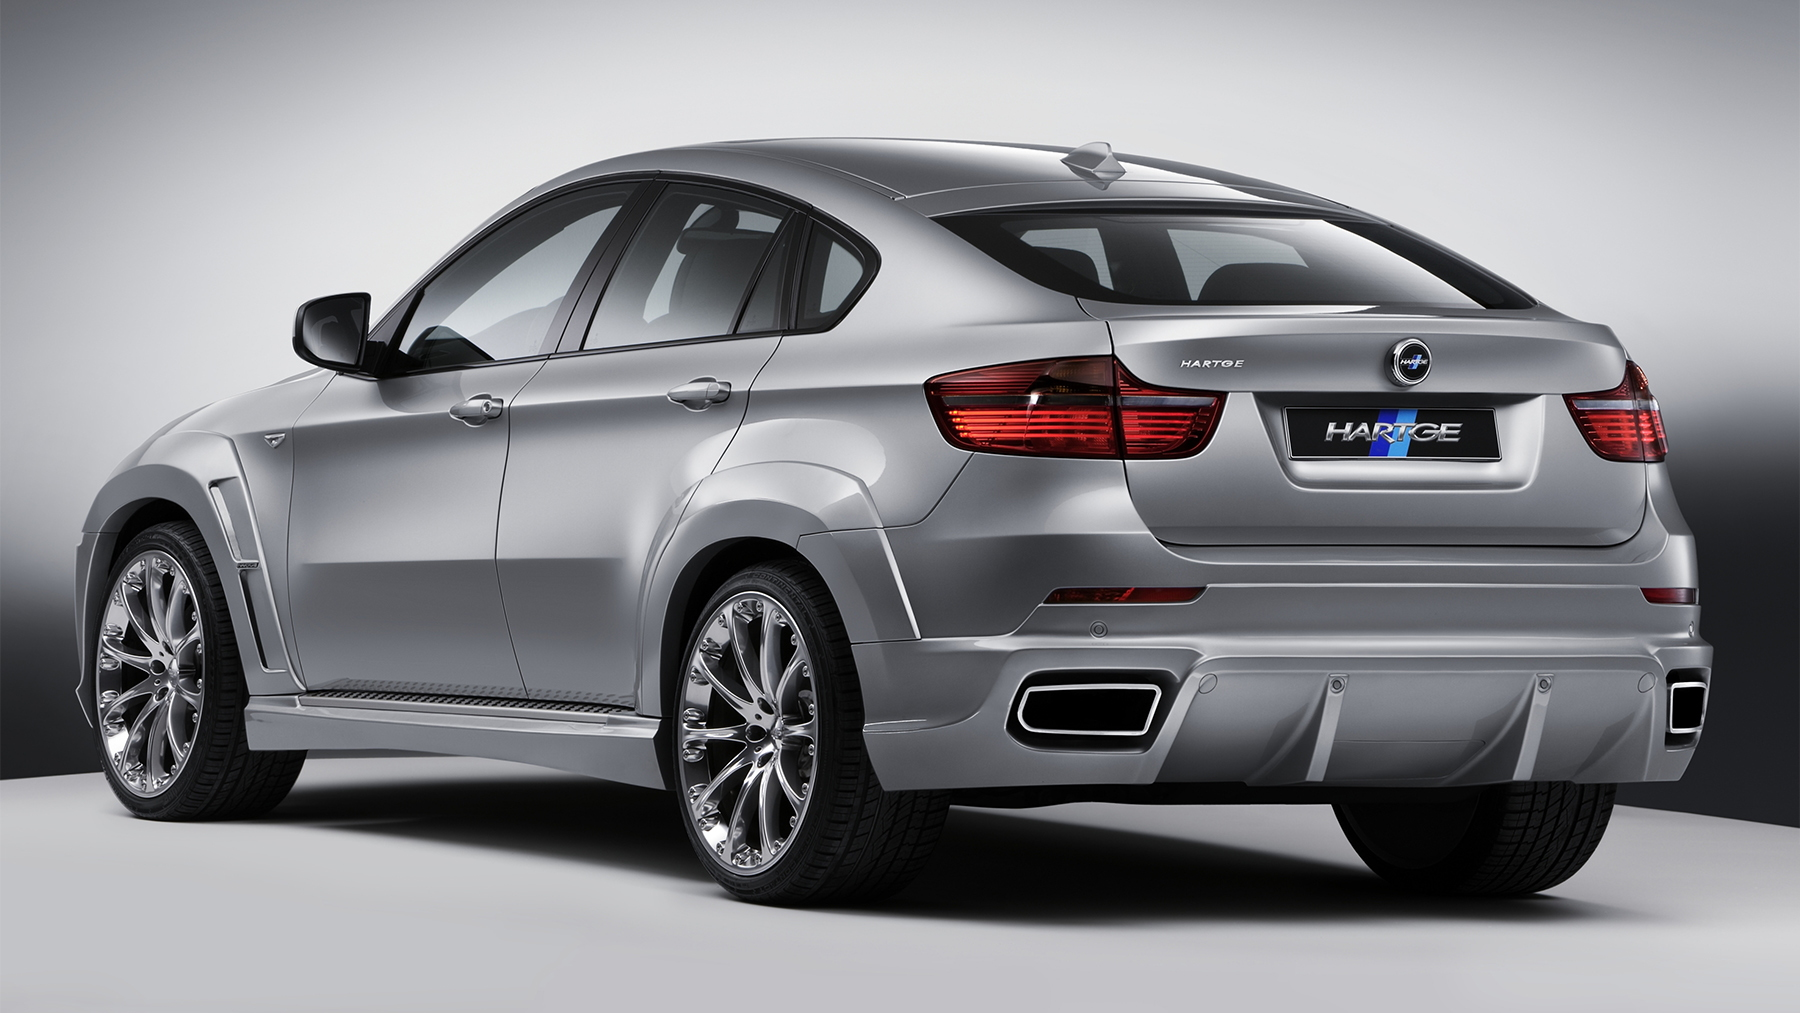 hartge bmw x6 styling pack 002